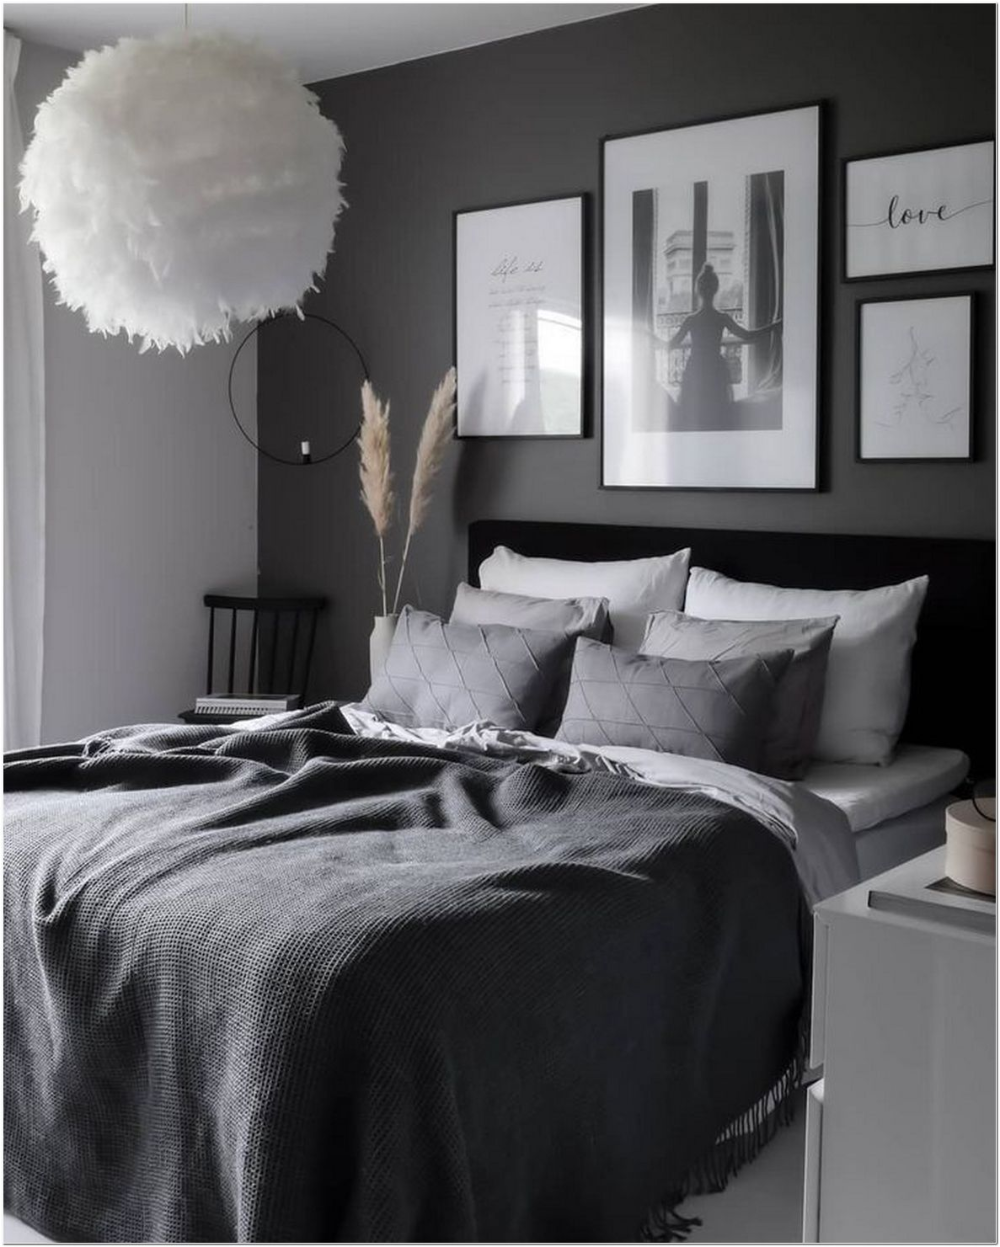 96+ grey and white bedroom ideas on a budget 17 in 2020 ... on Luxury Bedroom Ideas On A Budget  id=39444